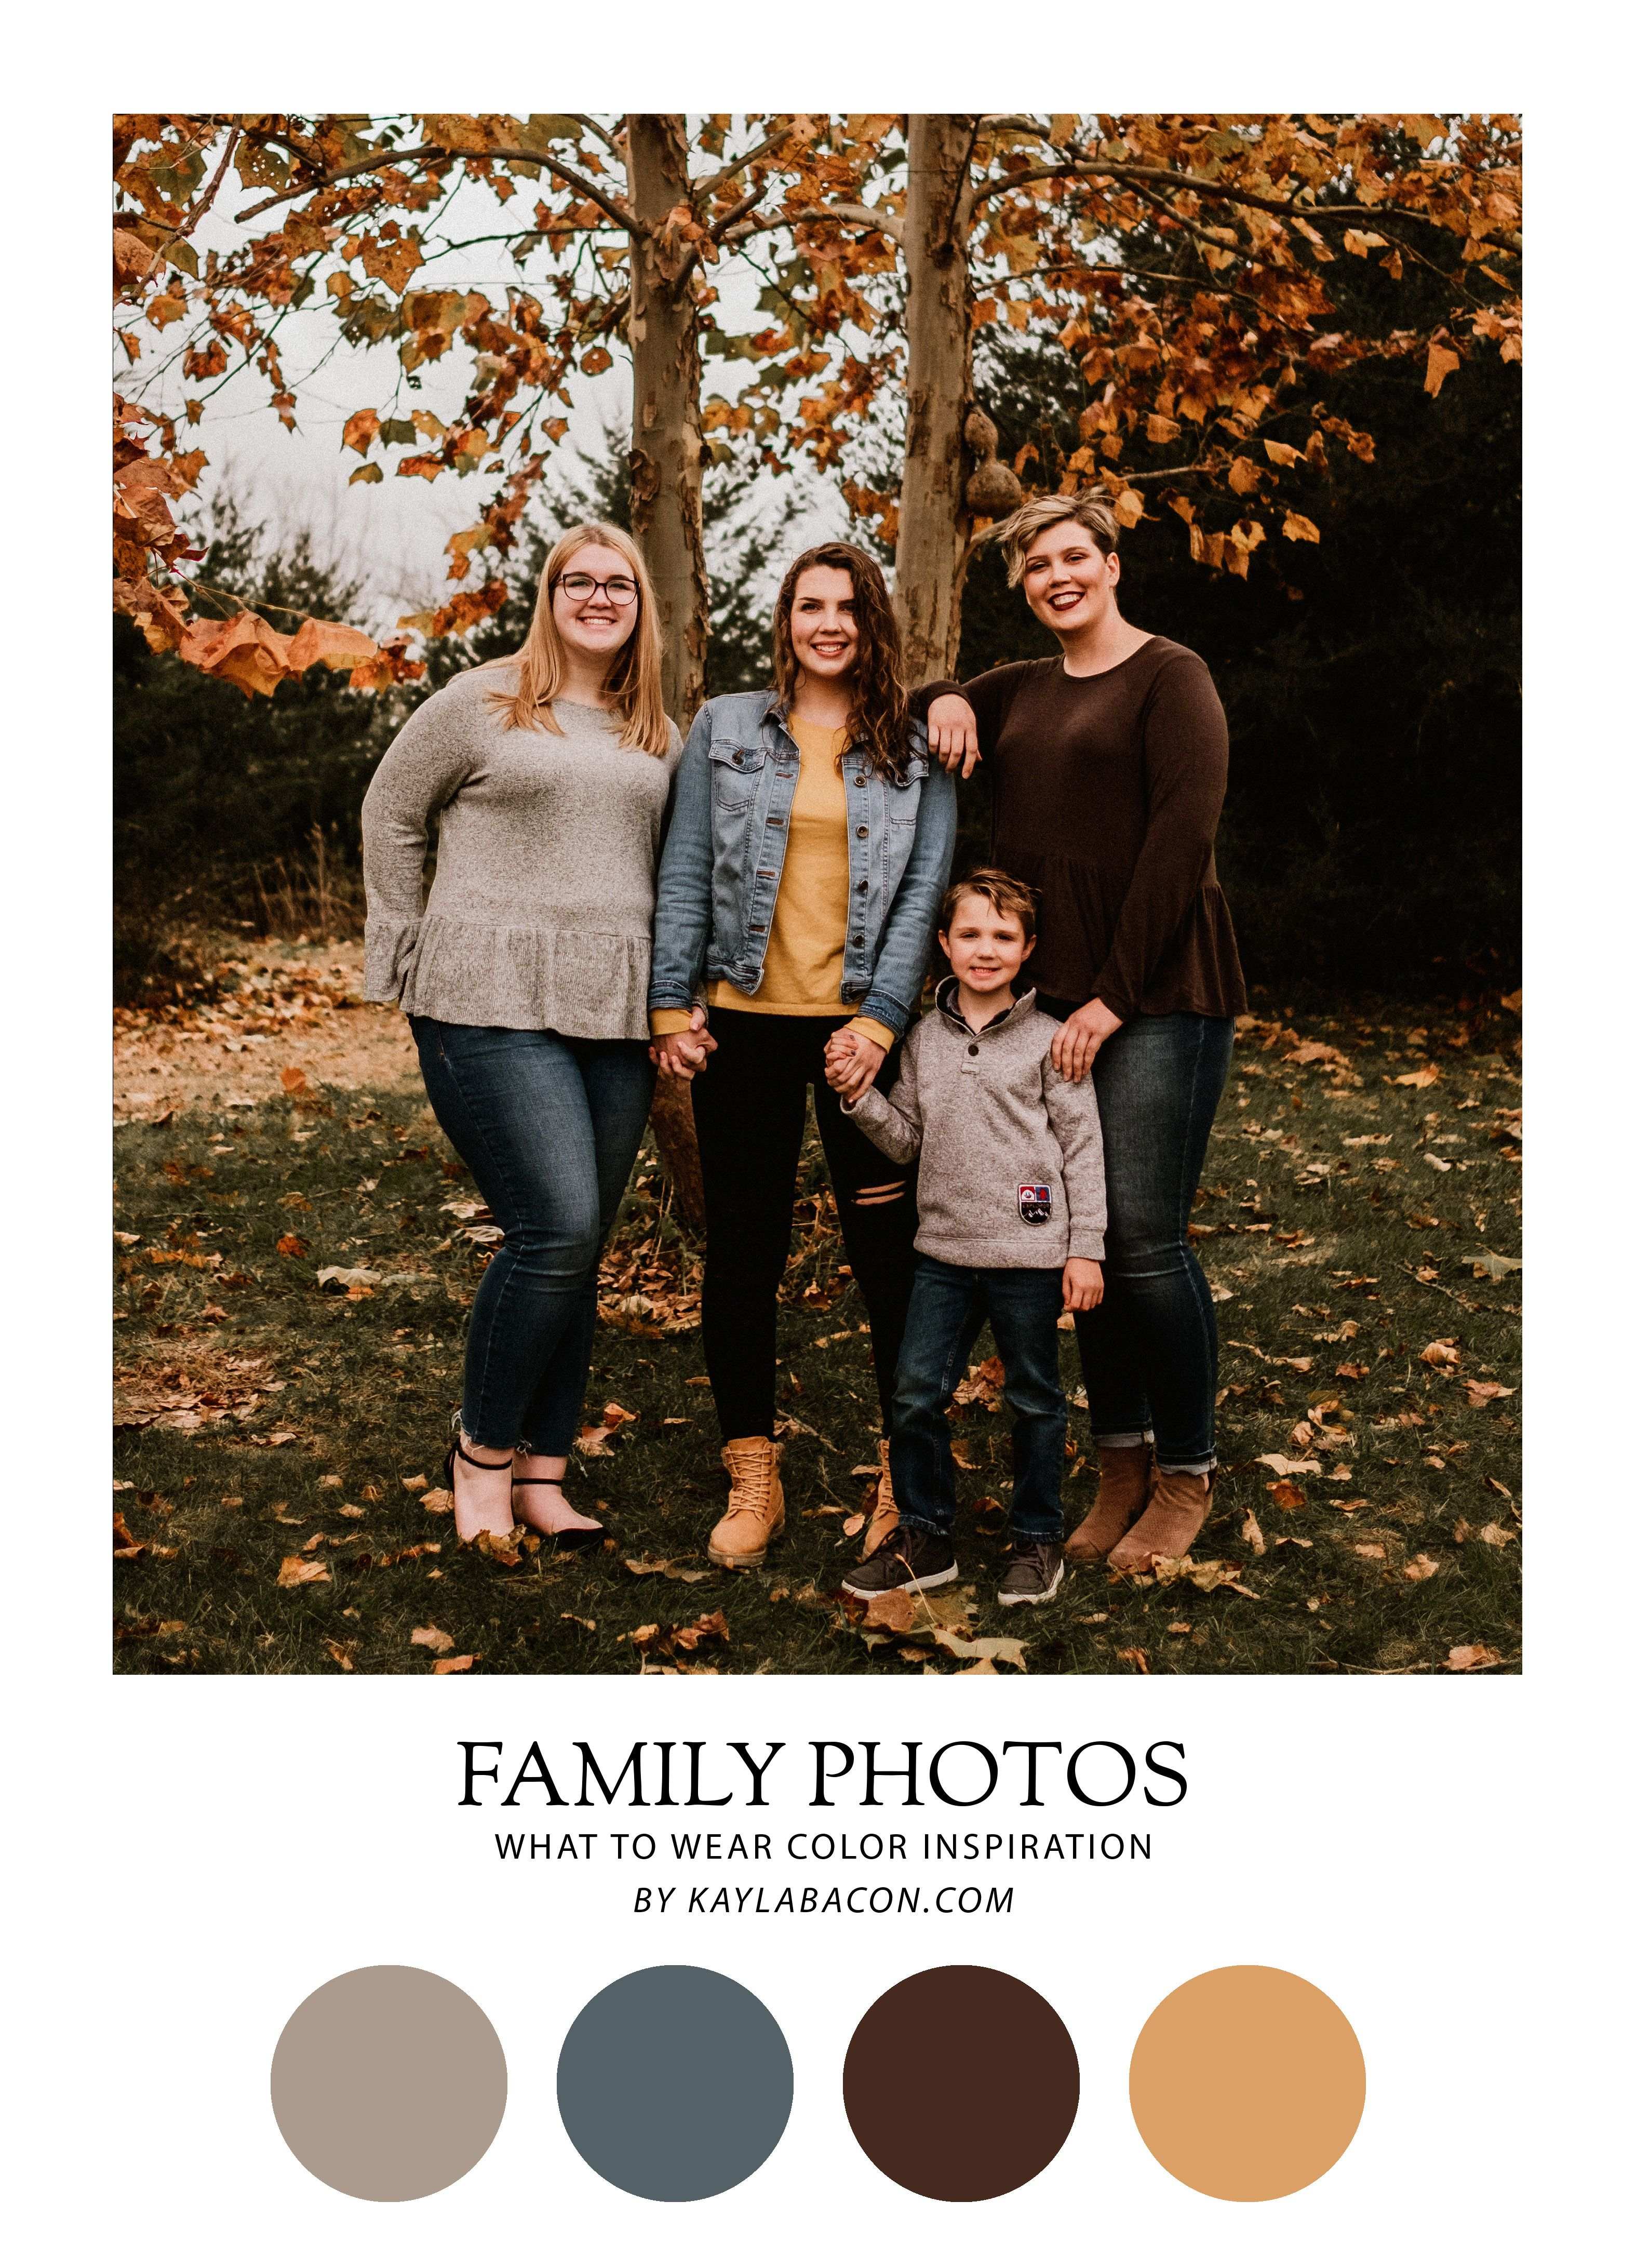 Fall Colors For Family Pictures : colors, family, pictures, Family, Photos, Kaylabacon.com, Outfits,, Photo